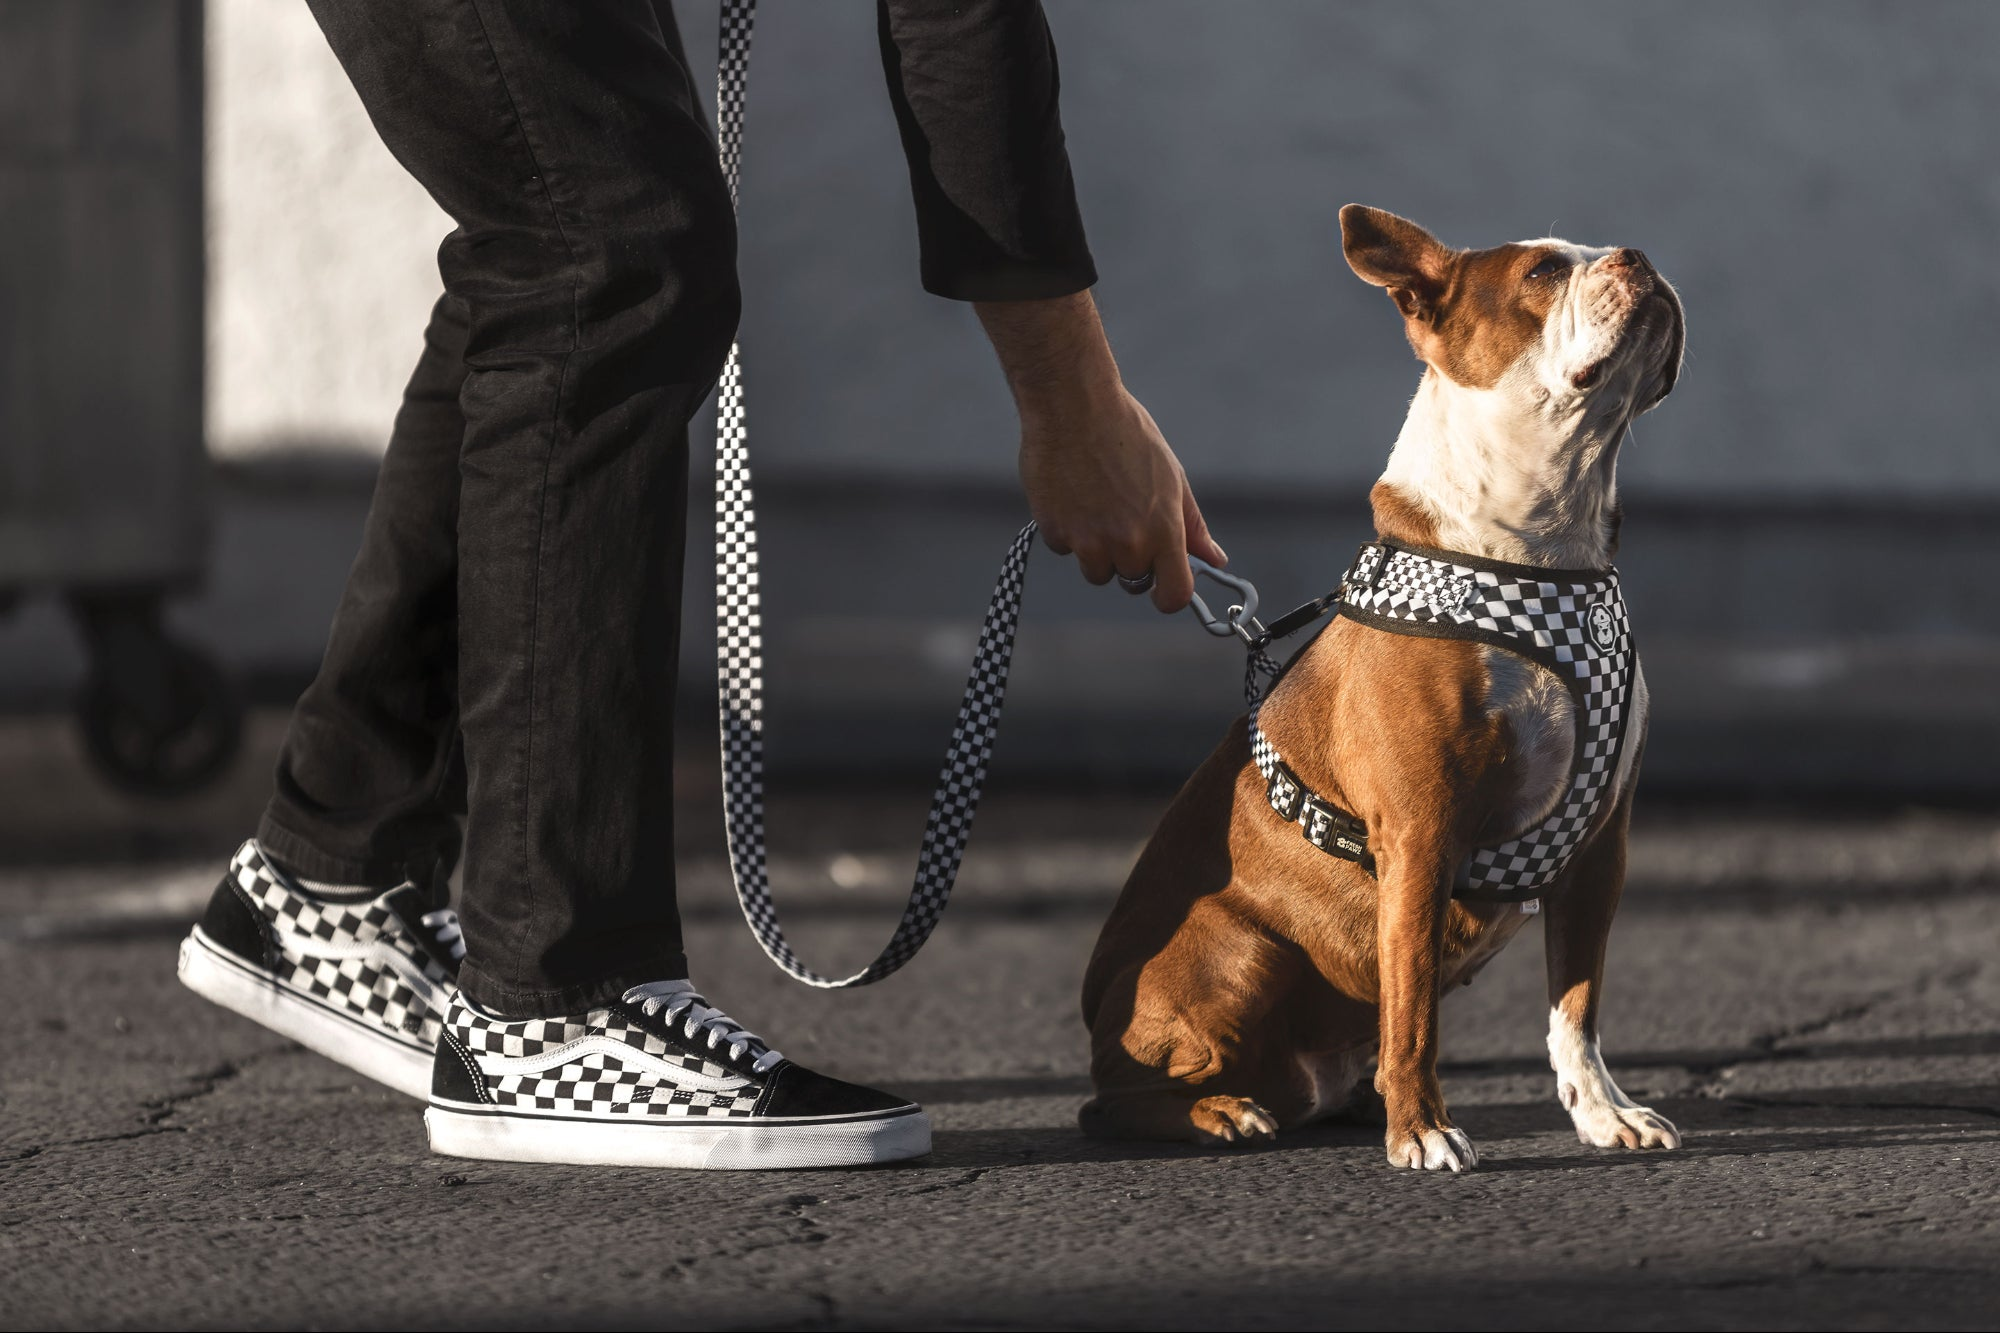 Streetwear Culture Goes to the Dogs